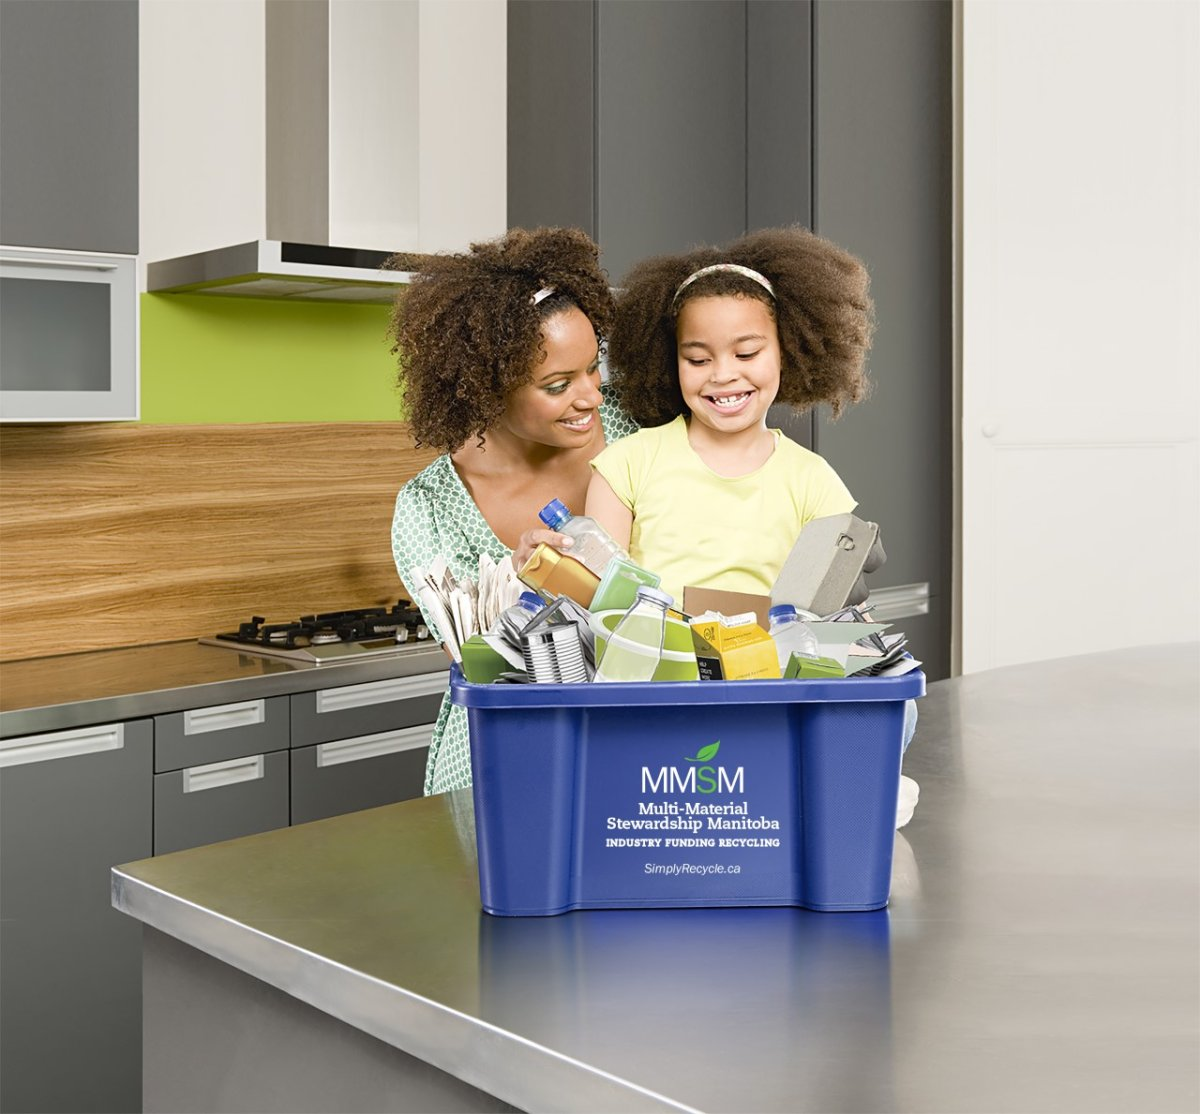 5 ways to take at-home recycling to the next level this summer - image